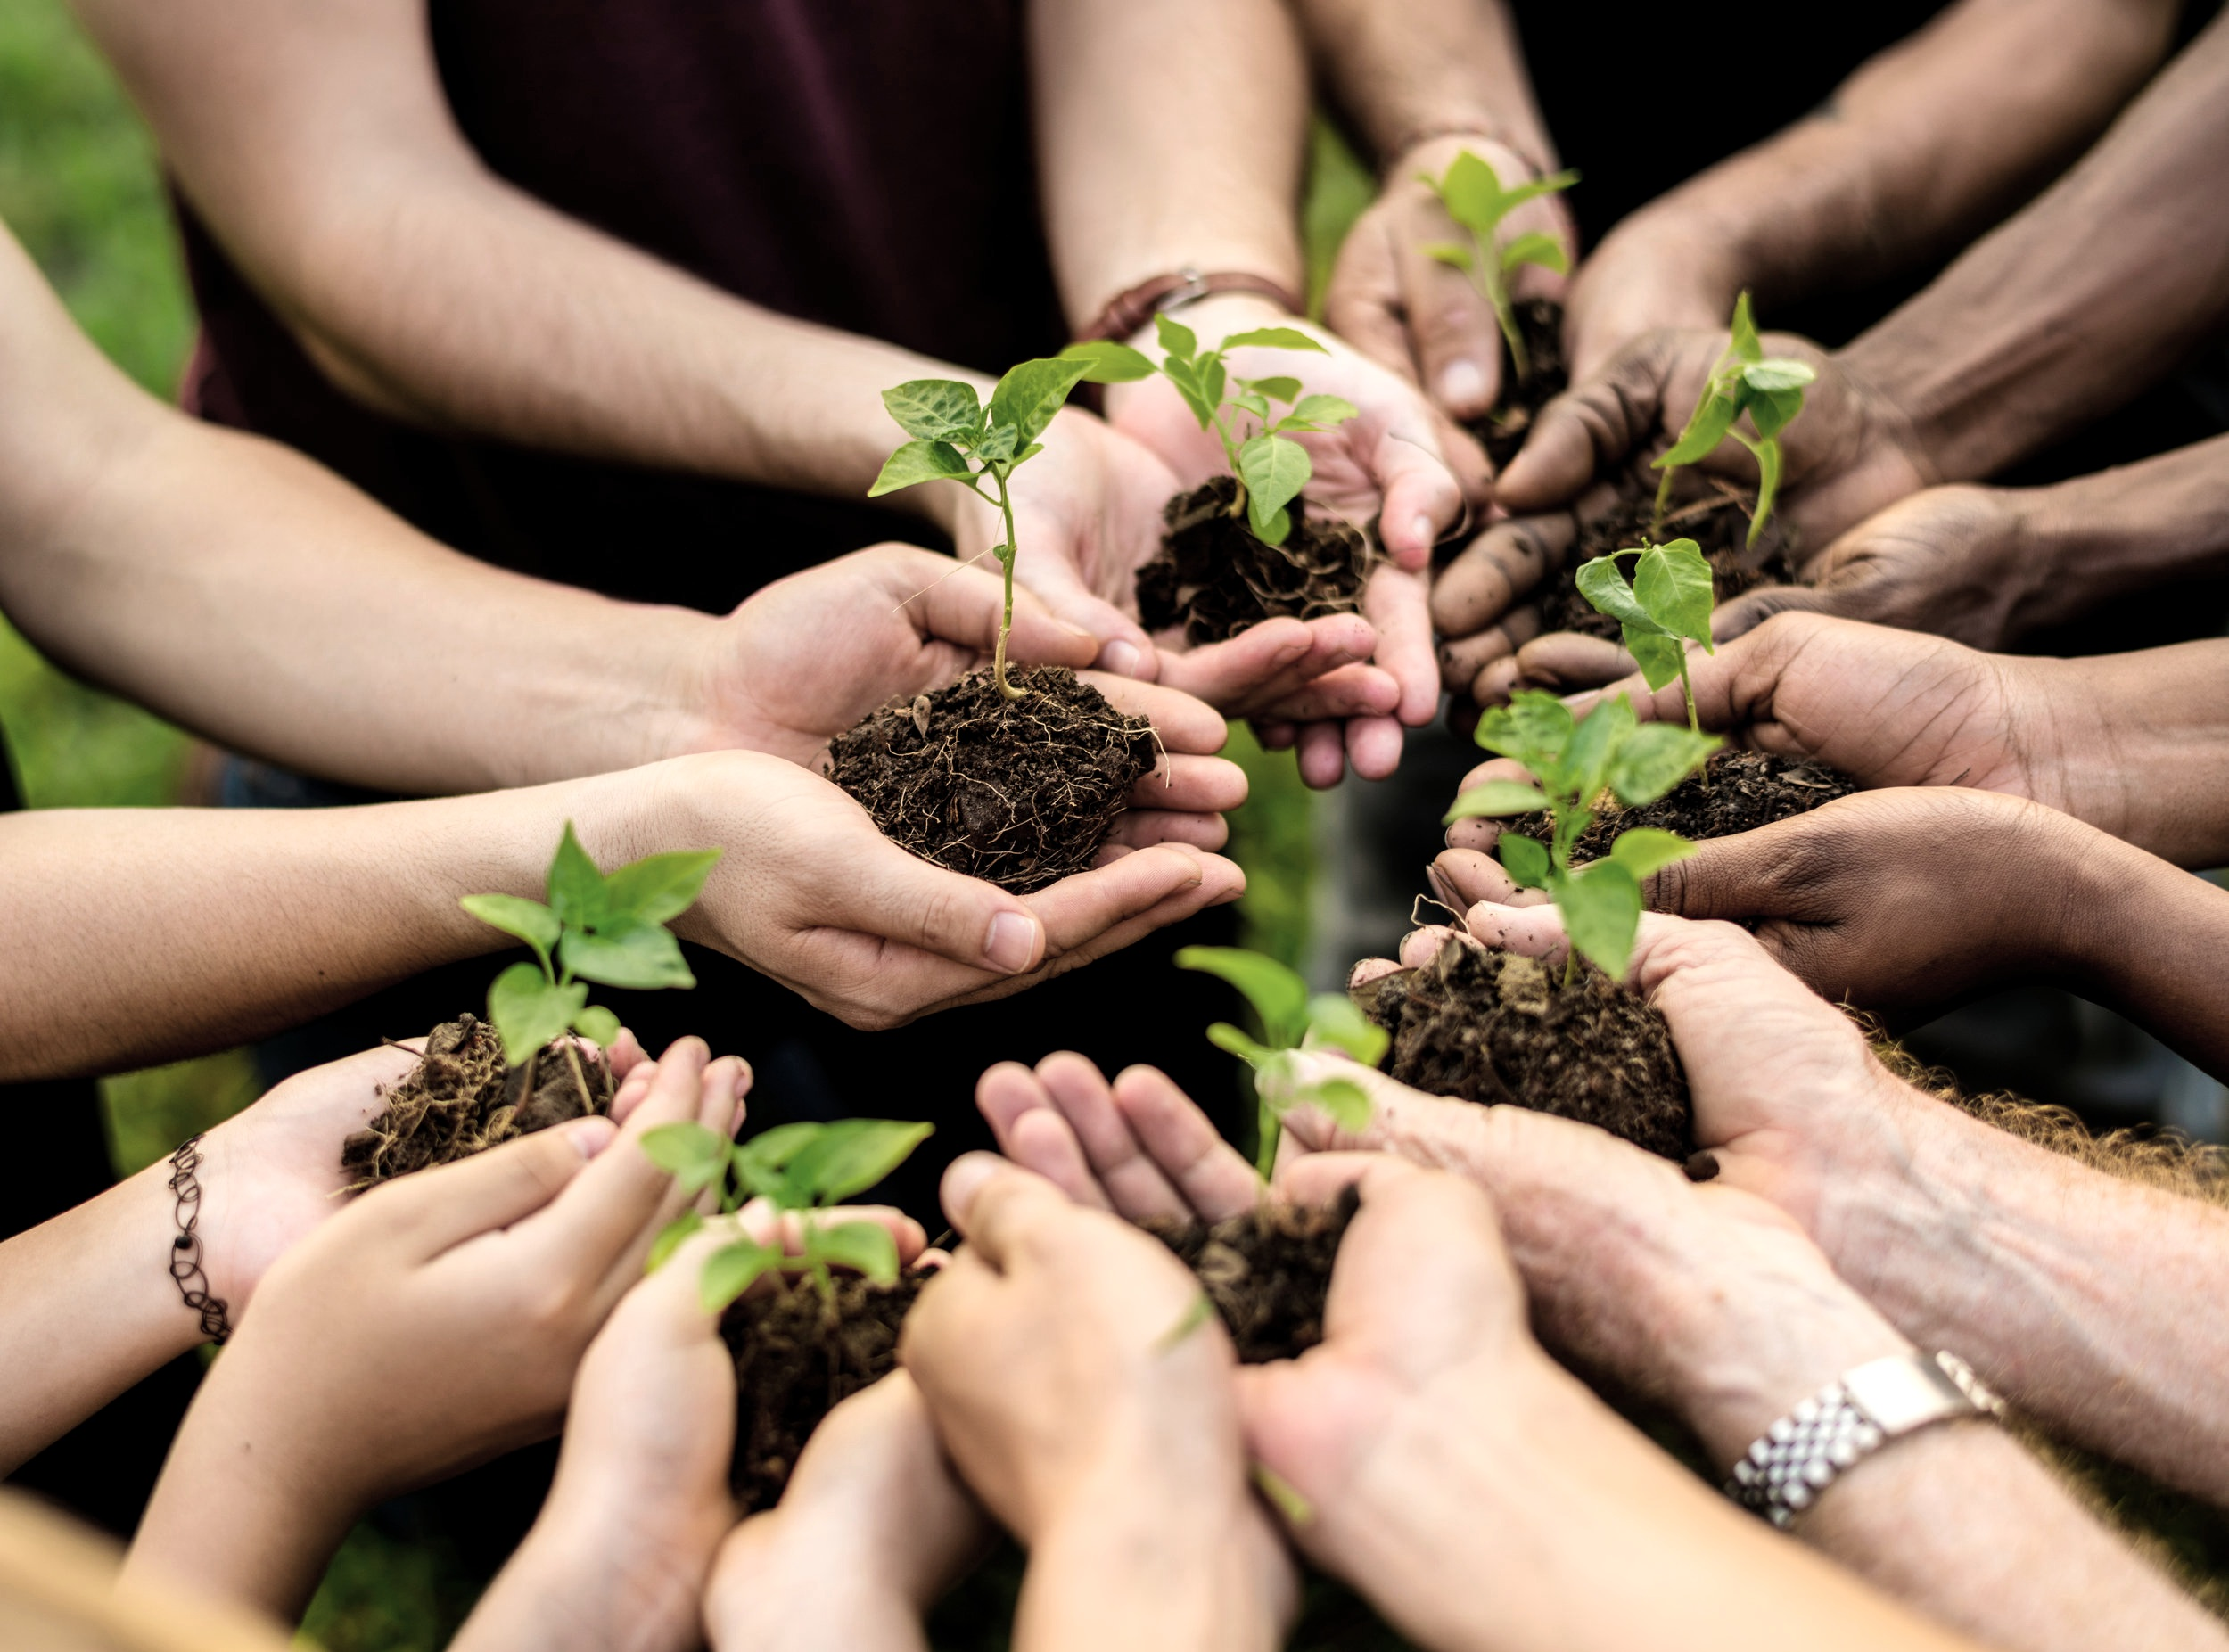 environmental nonprofits organizations | Green Dreamer Podcast on Sustainability and Regeneration